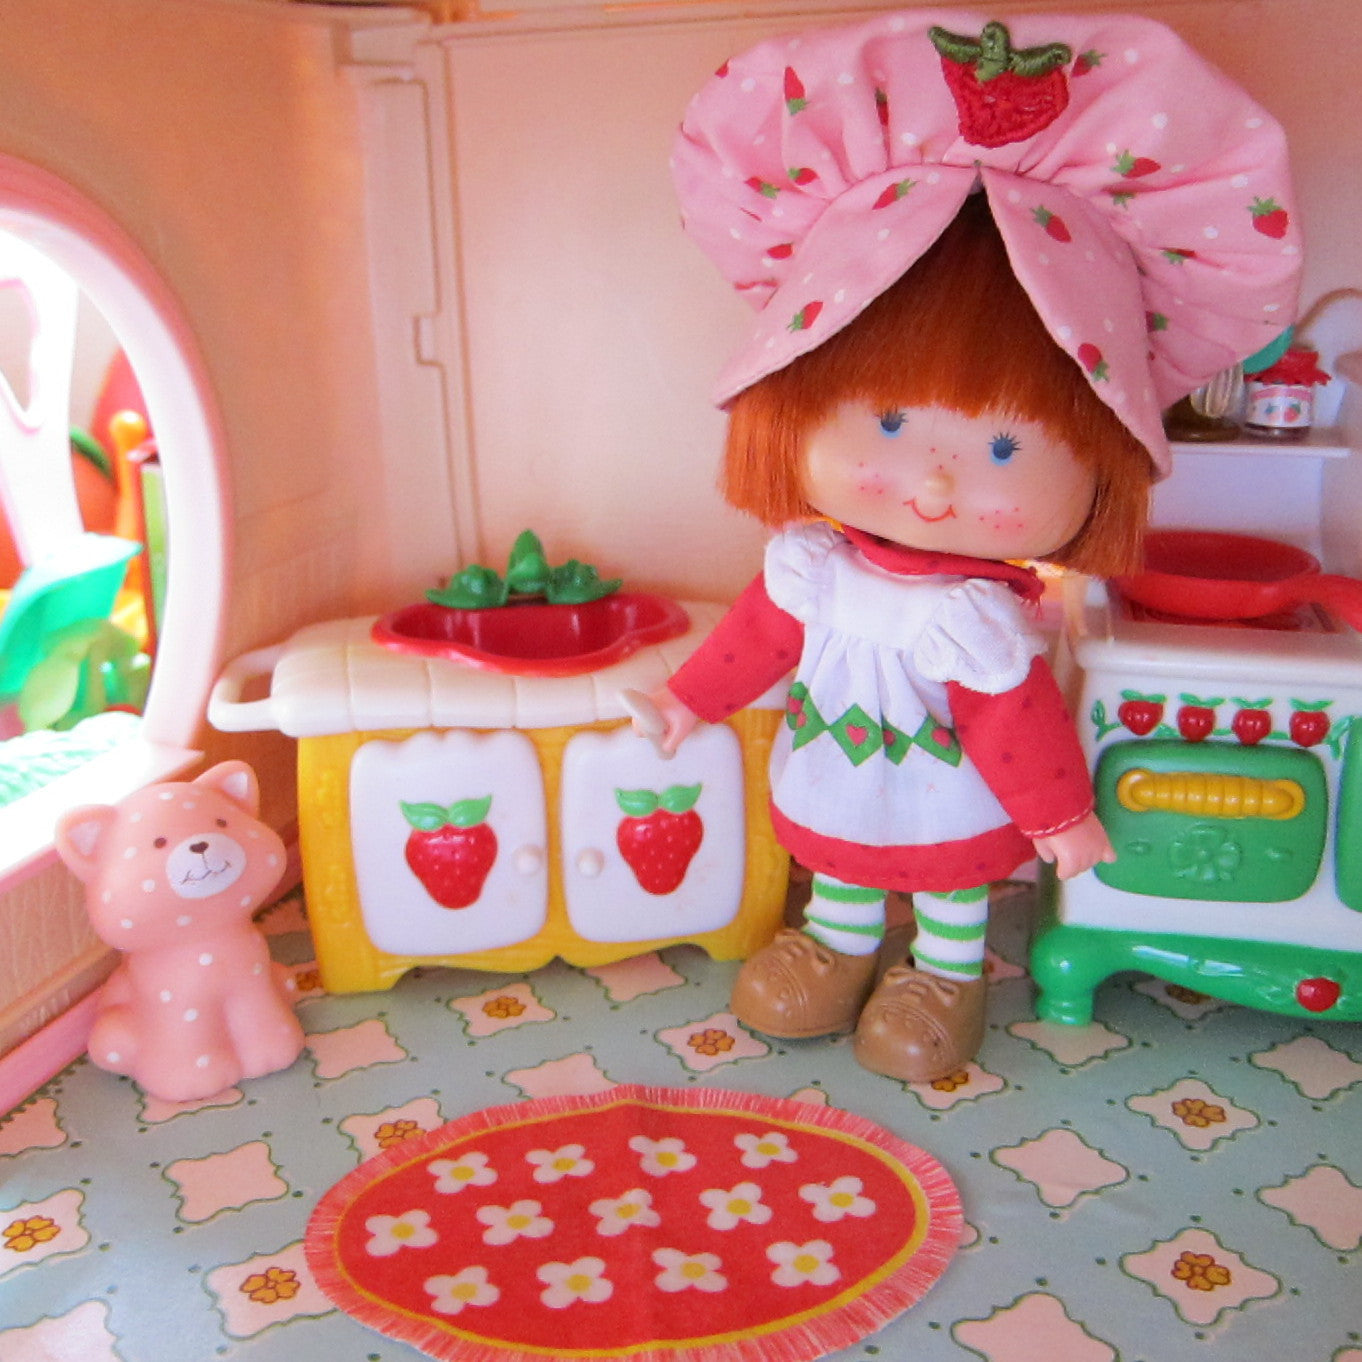 Kitchen Sink For Strawberry Shortcake Berry Happy Home